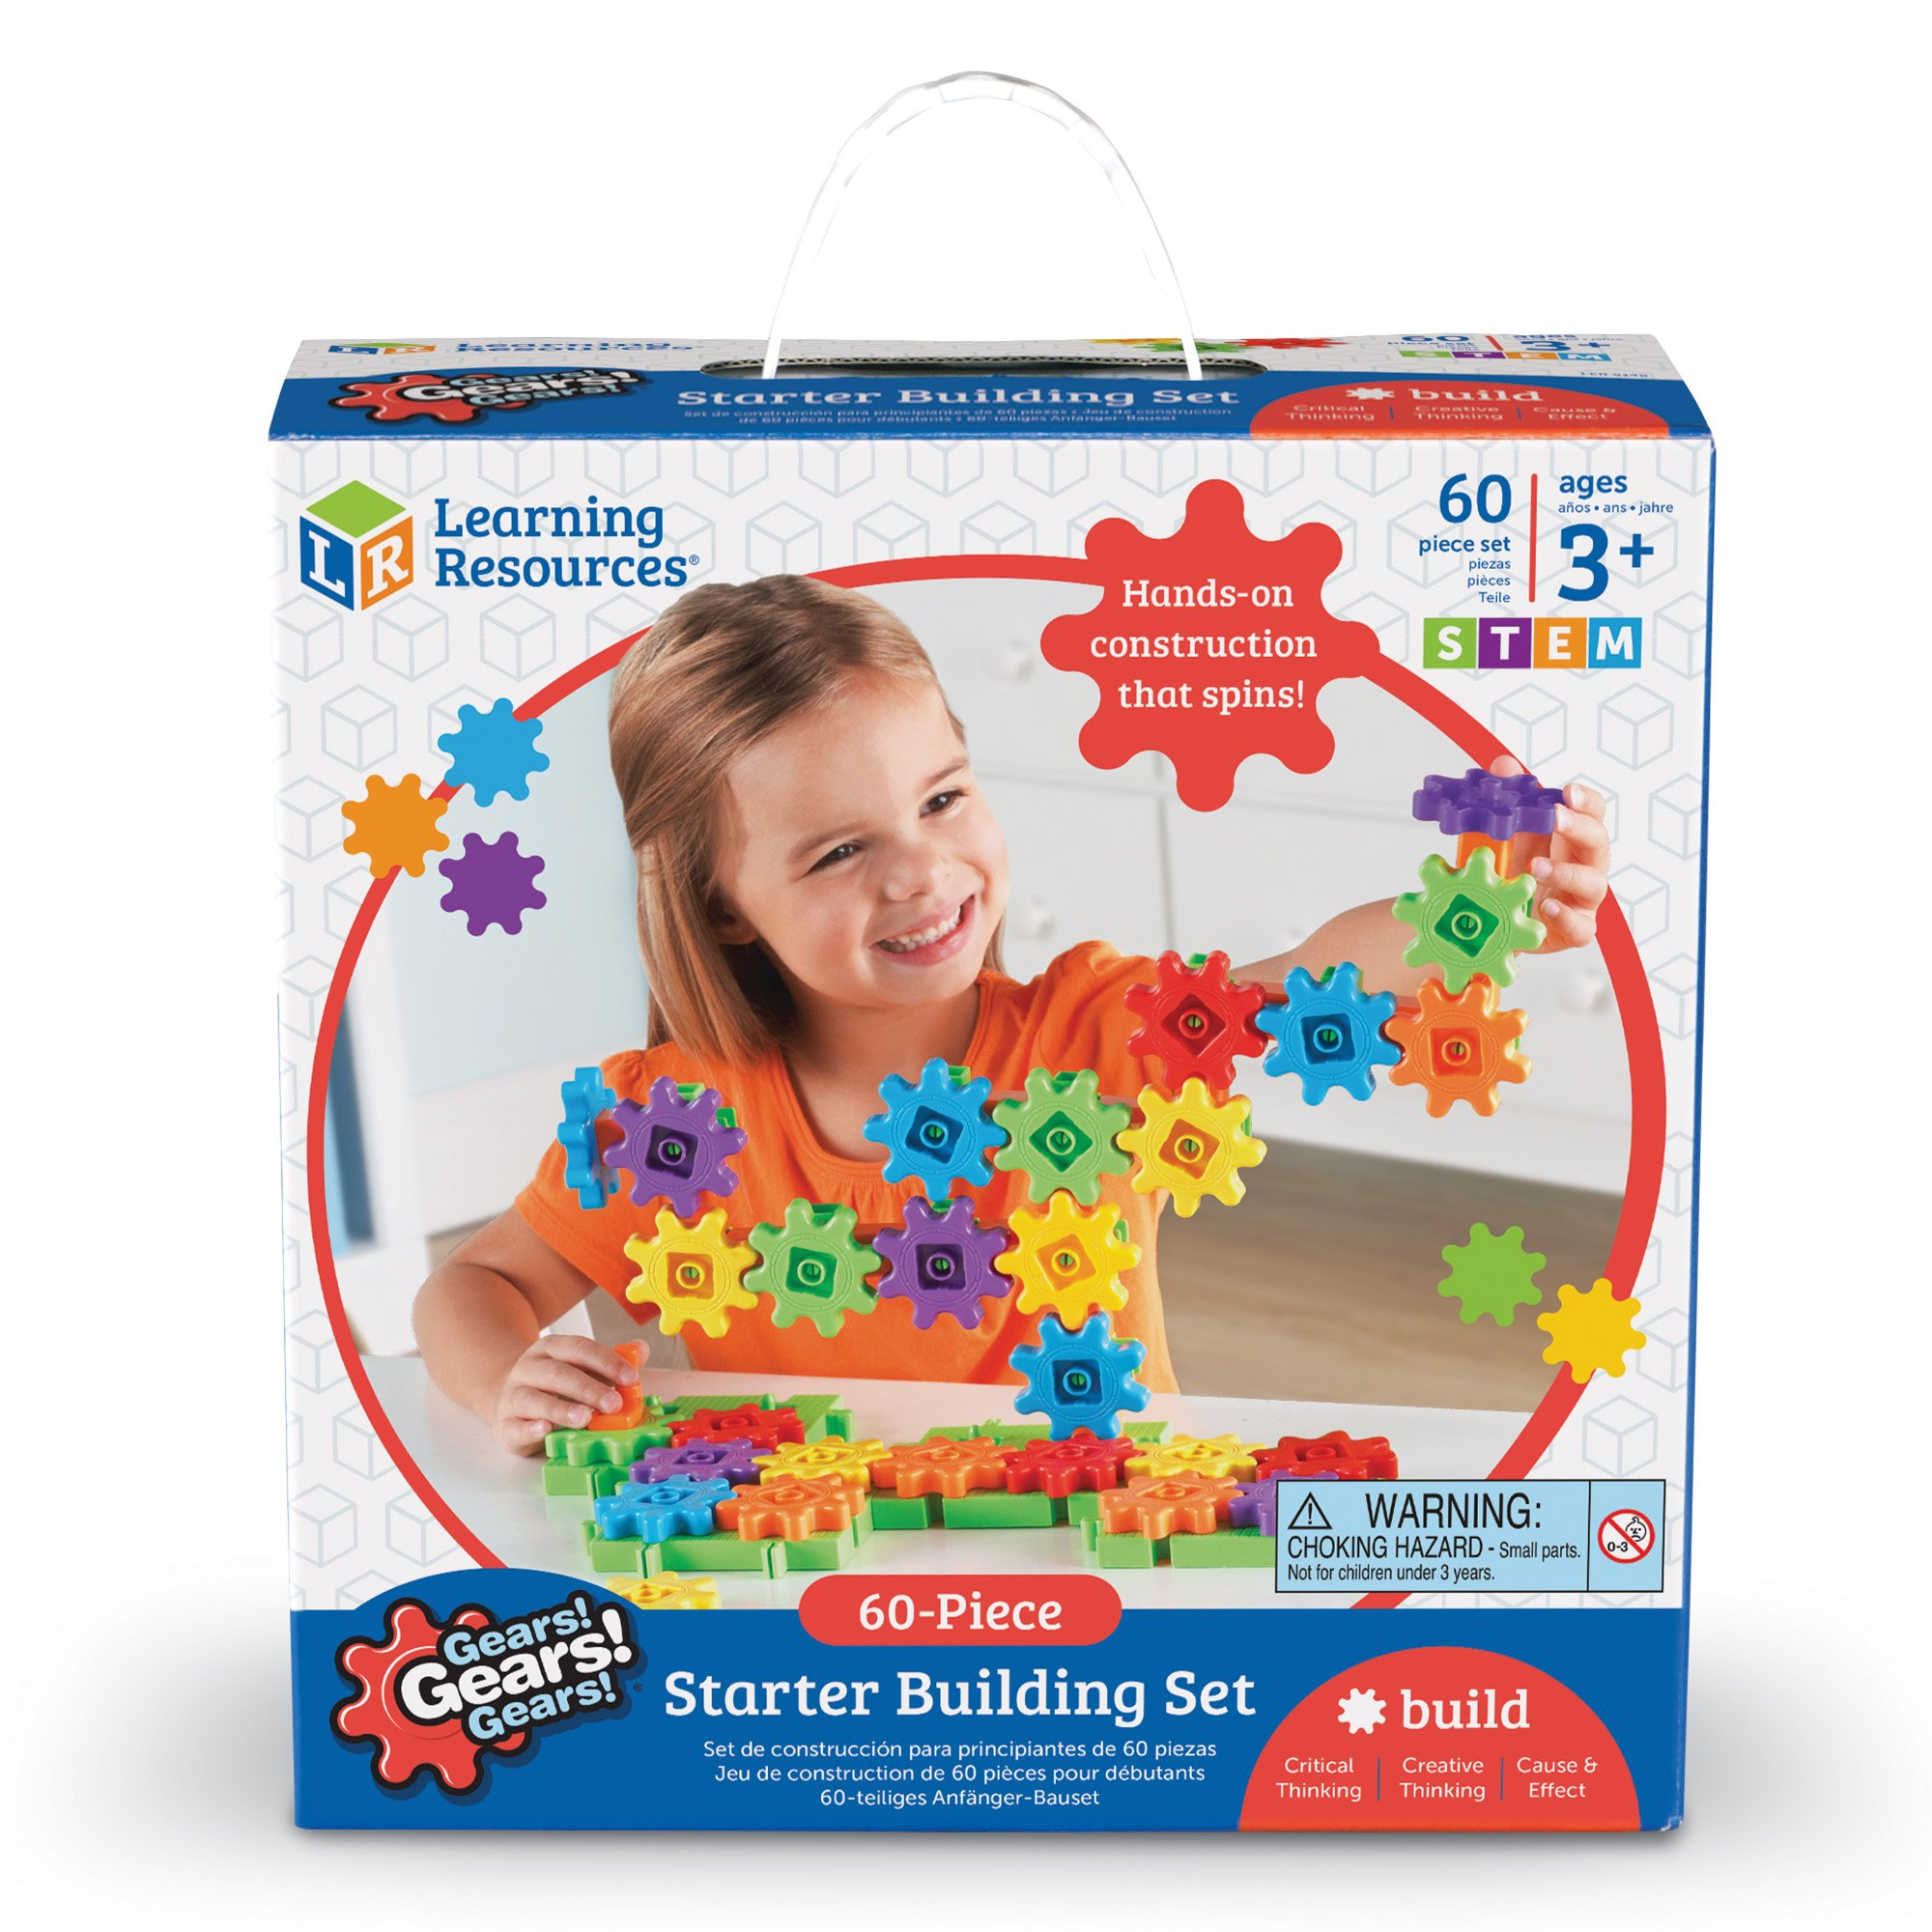 Learning Resources Gears! Gears! Gears! Starter Building Set, 60 Pieces by Learning Resources (Image #3)